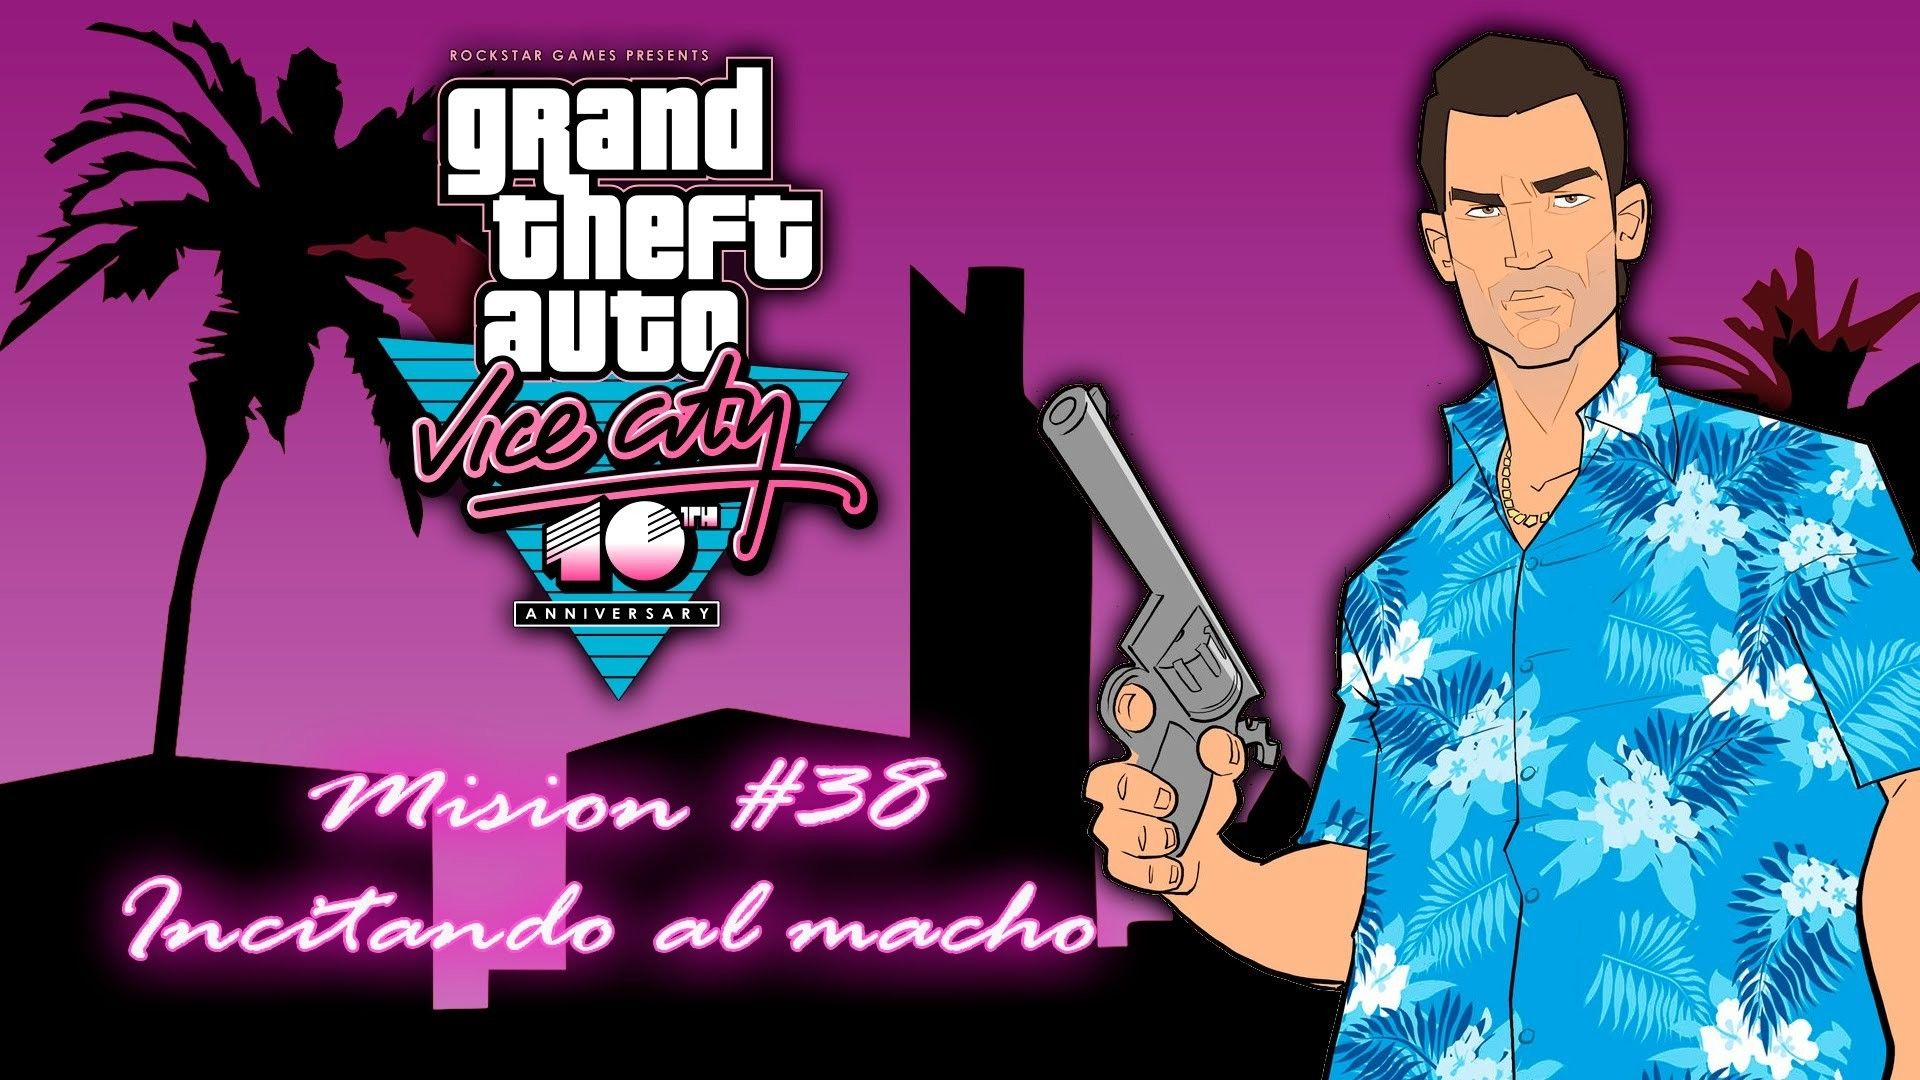 Gta Vice City Wallpapers 67 Images Vaporwave Wallpaper Retro Waves Vaporwave